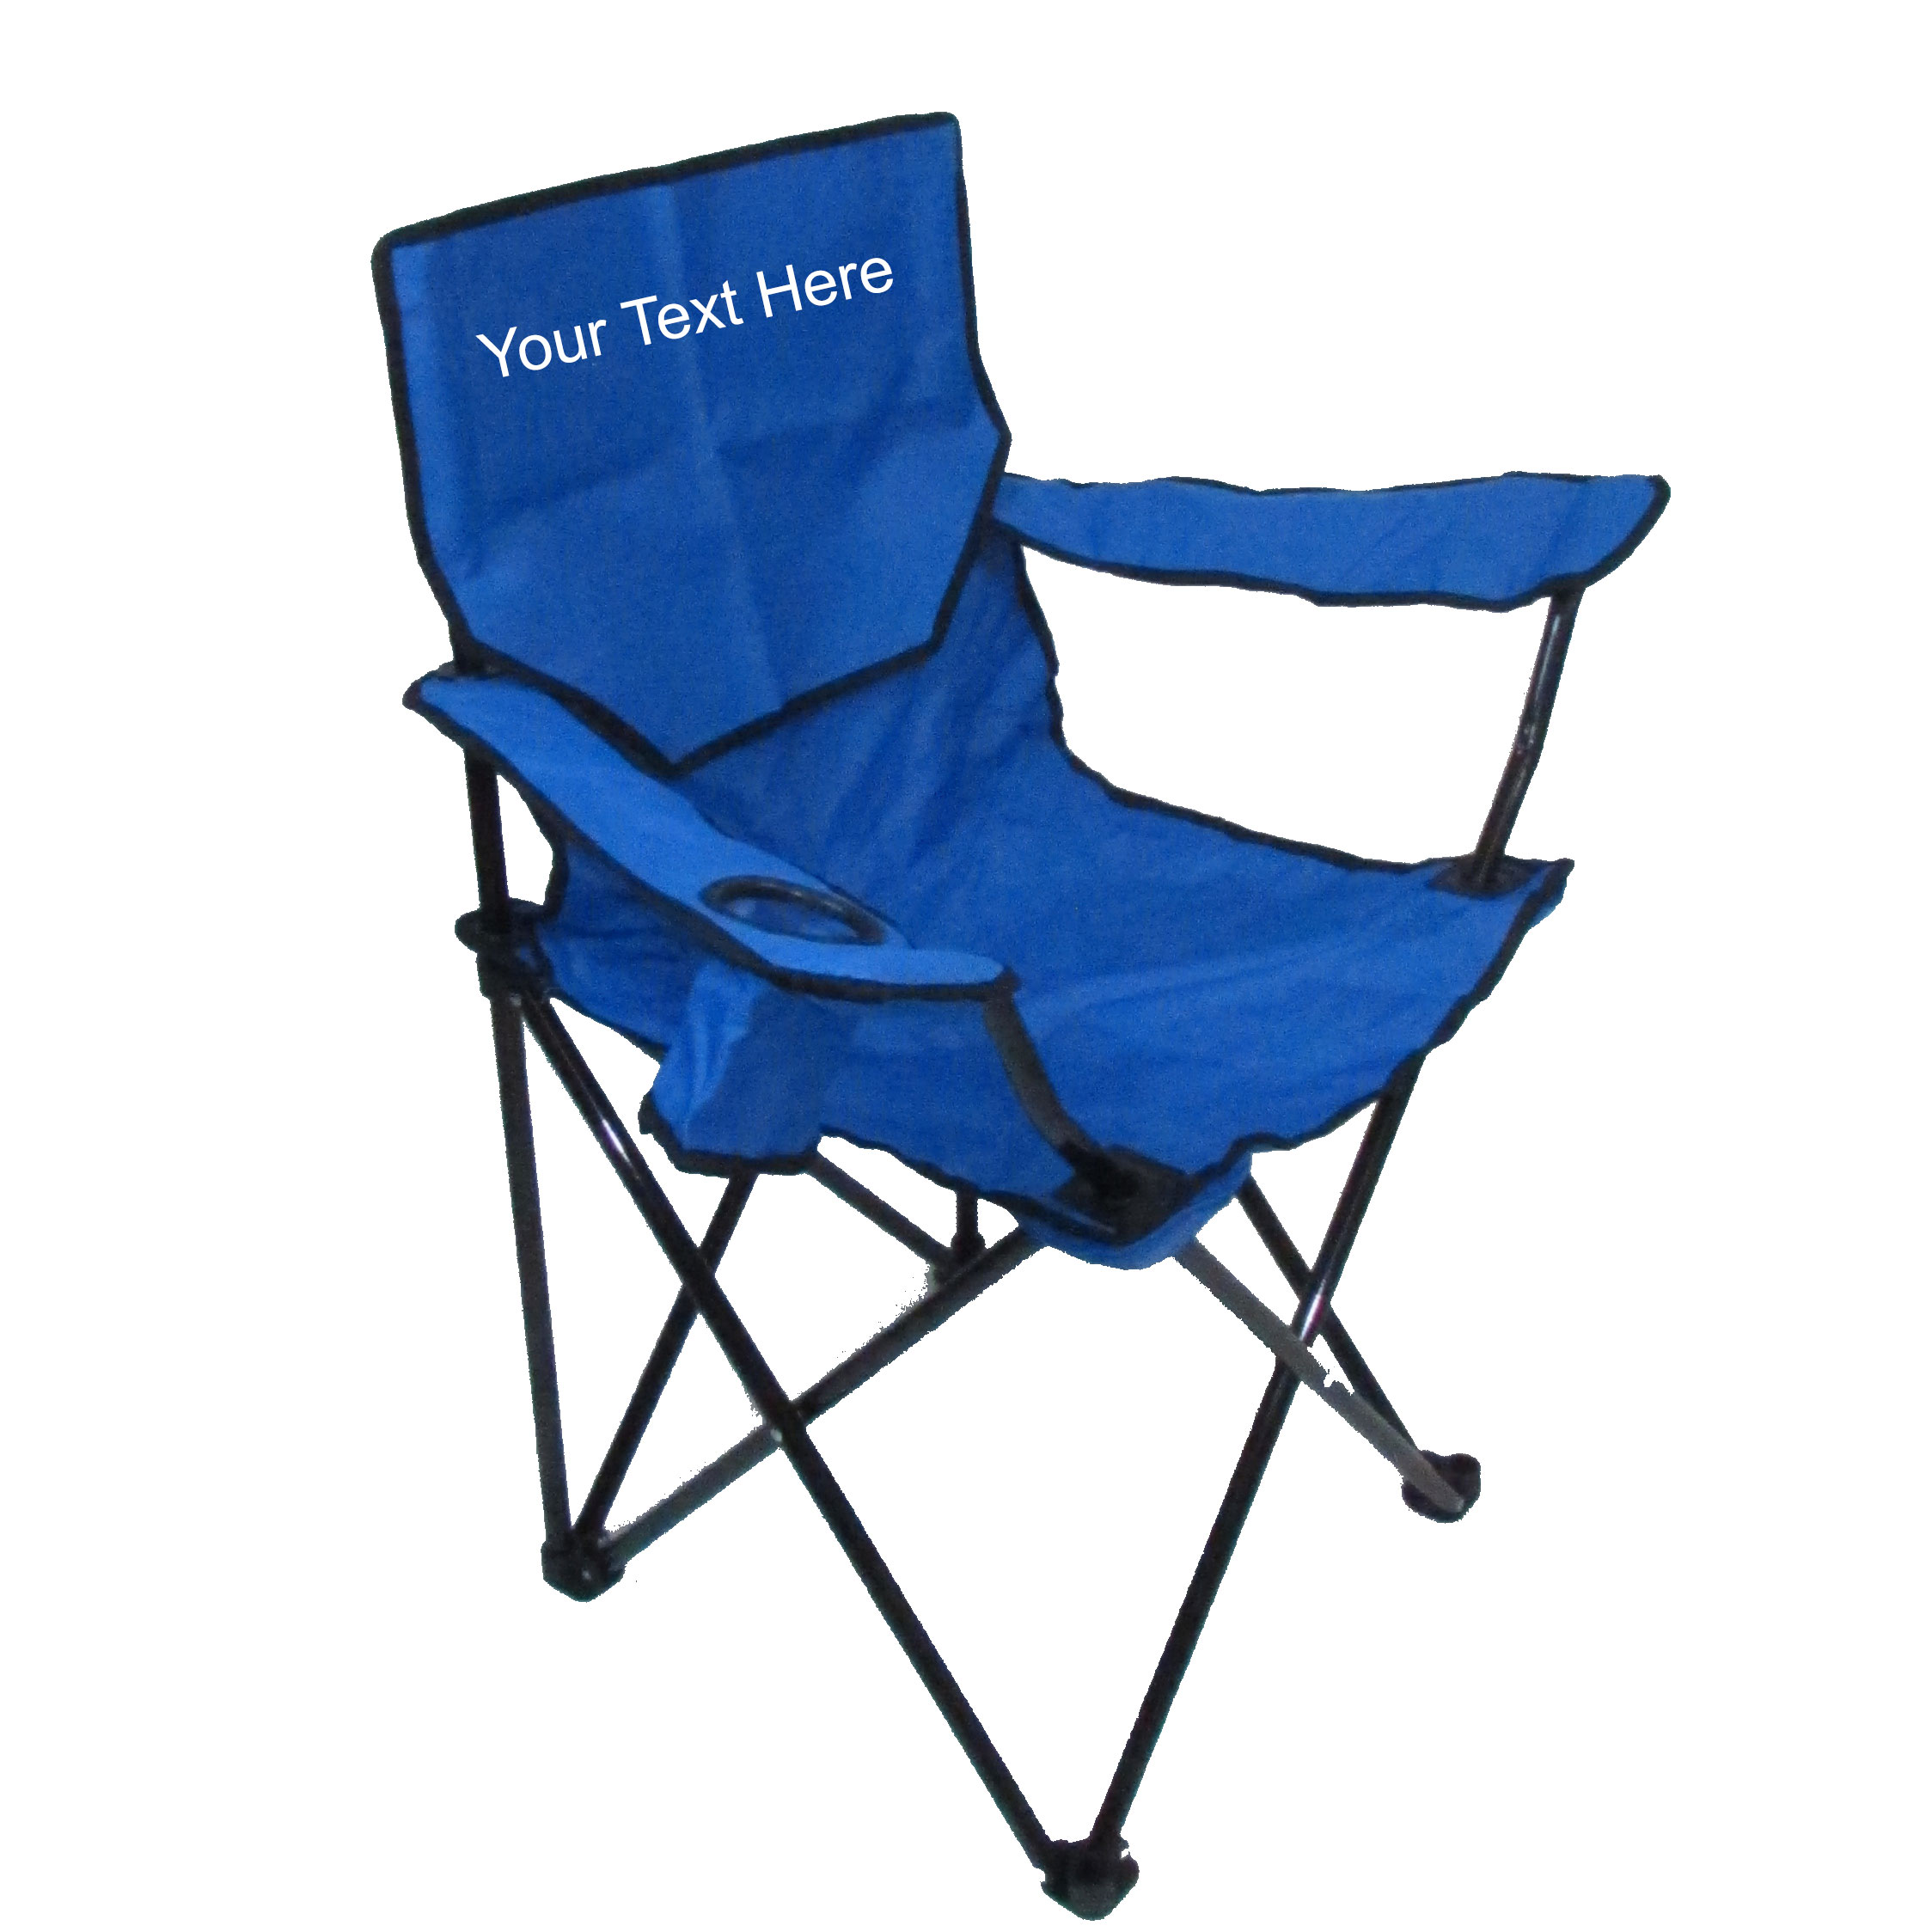 EMBROIDERED Personalized Bag Chair by Stadium Chair